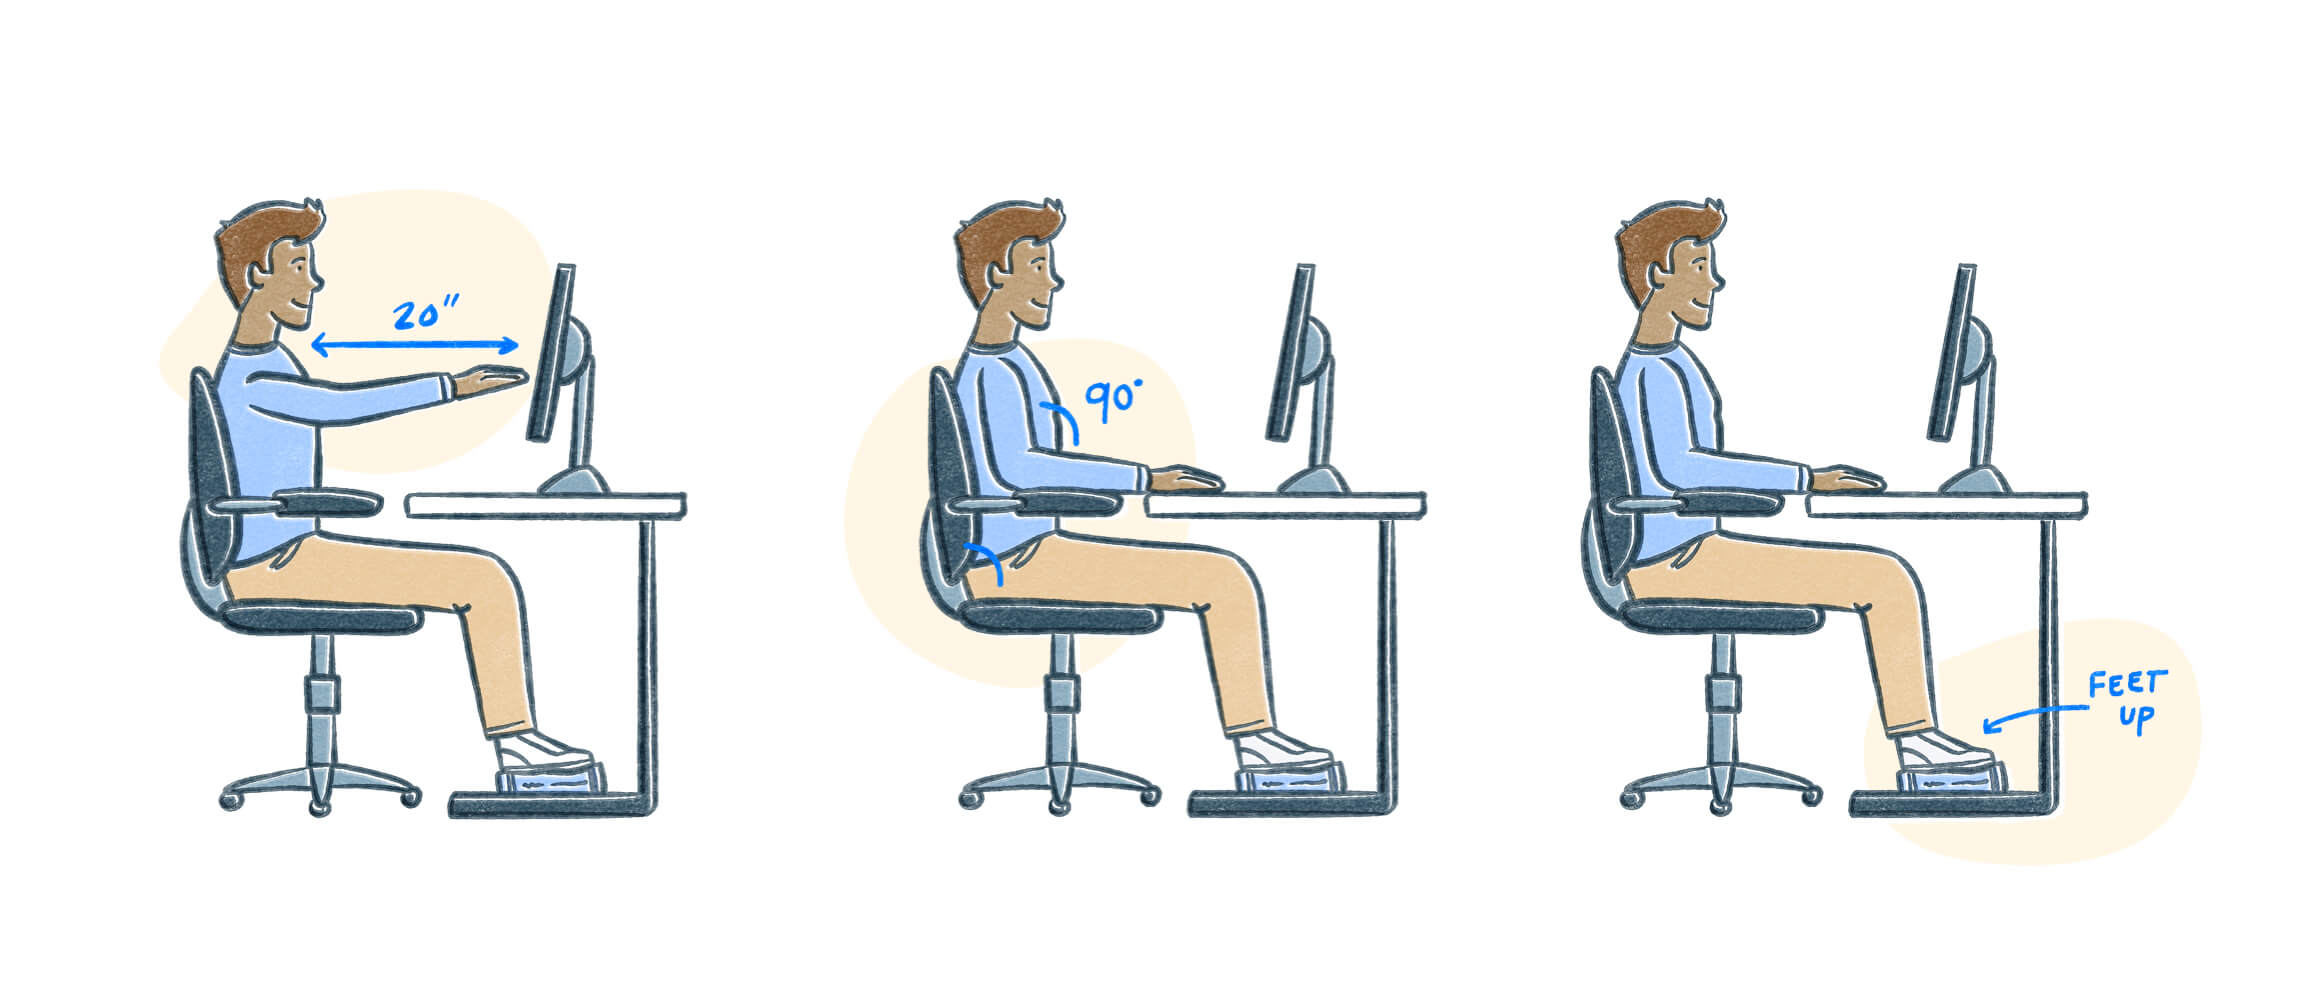 A person properly sitting at a desk. They are 20 inches from their monitor, sitting straight up with arms bent at 90 degrees, and feet elevated. Illustration.